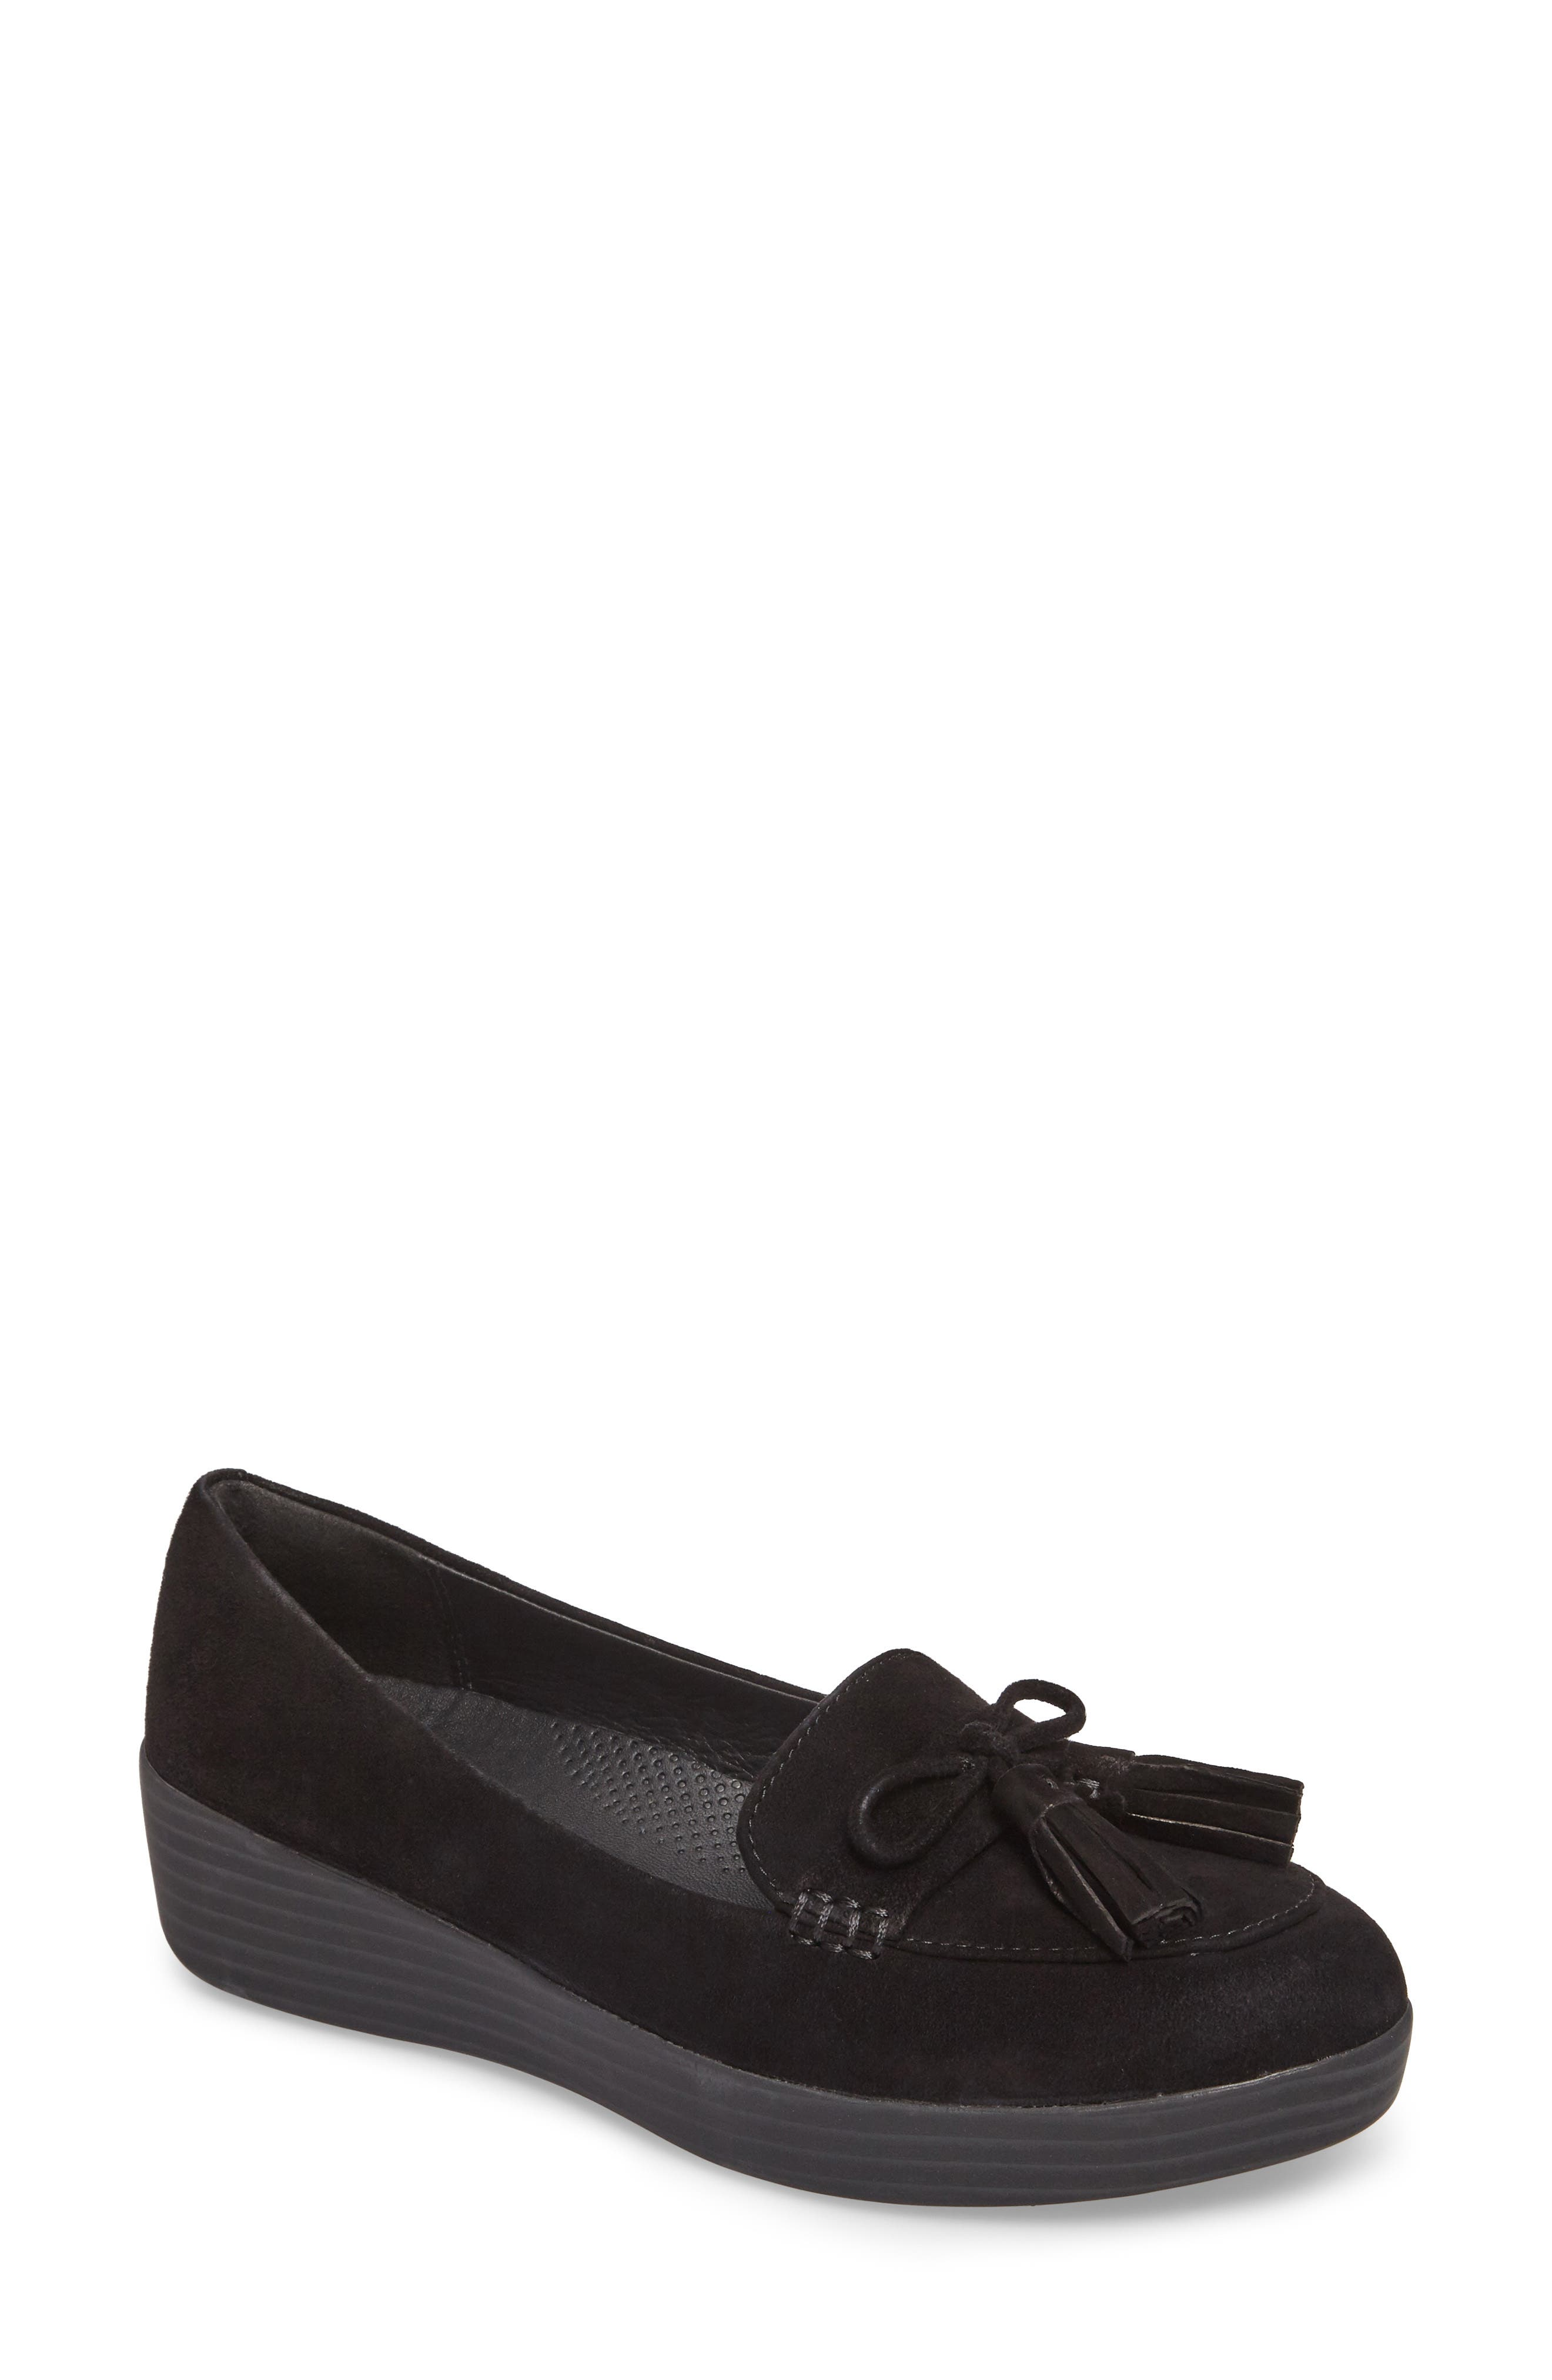 Alternate Image 1 Selected - FitFlop Tassel Bow Sneakerloafer™ Water Repellent Flat (Women)